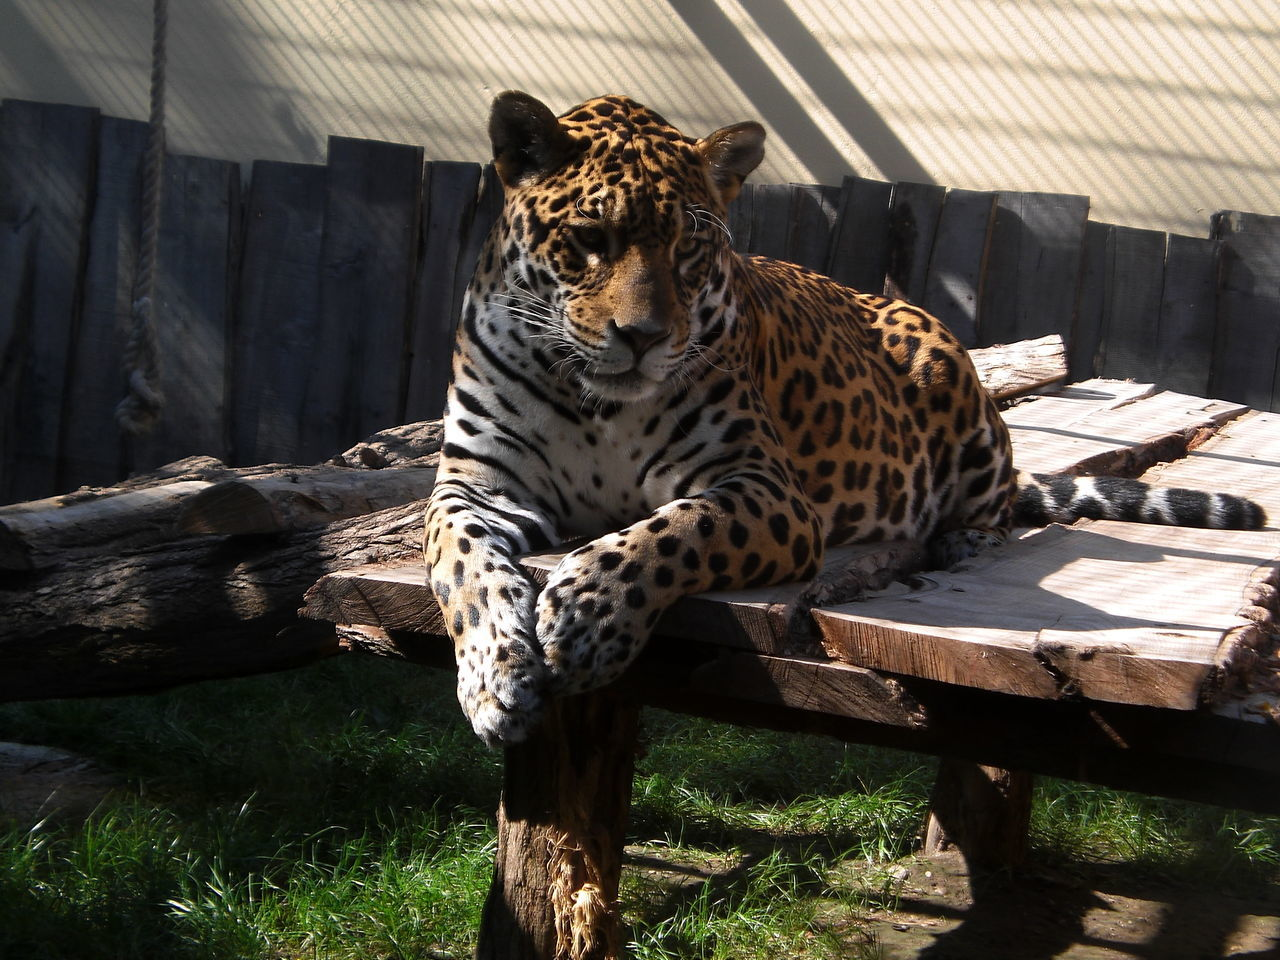 Leopard Relaxing On Wood In Cage At Zoo